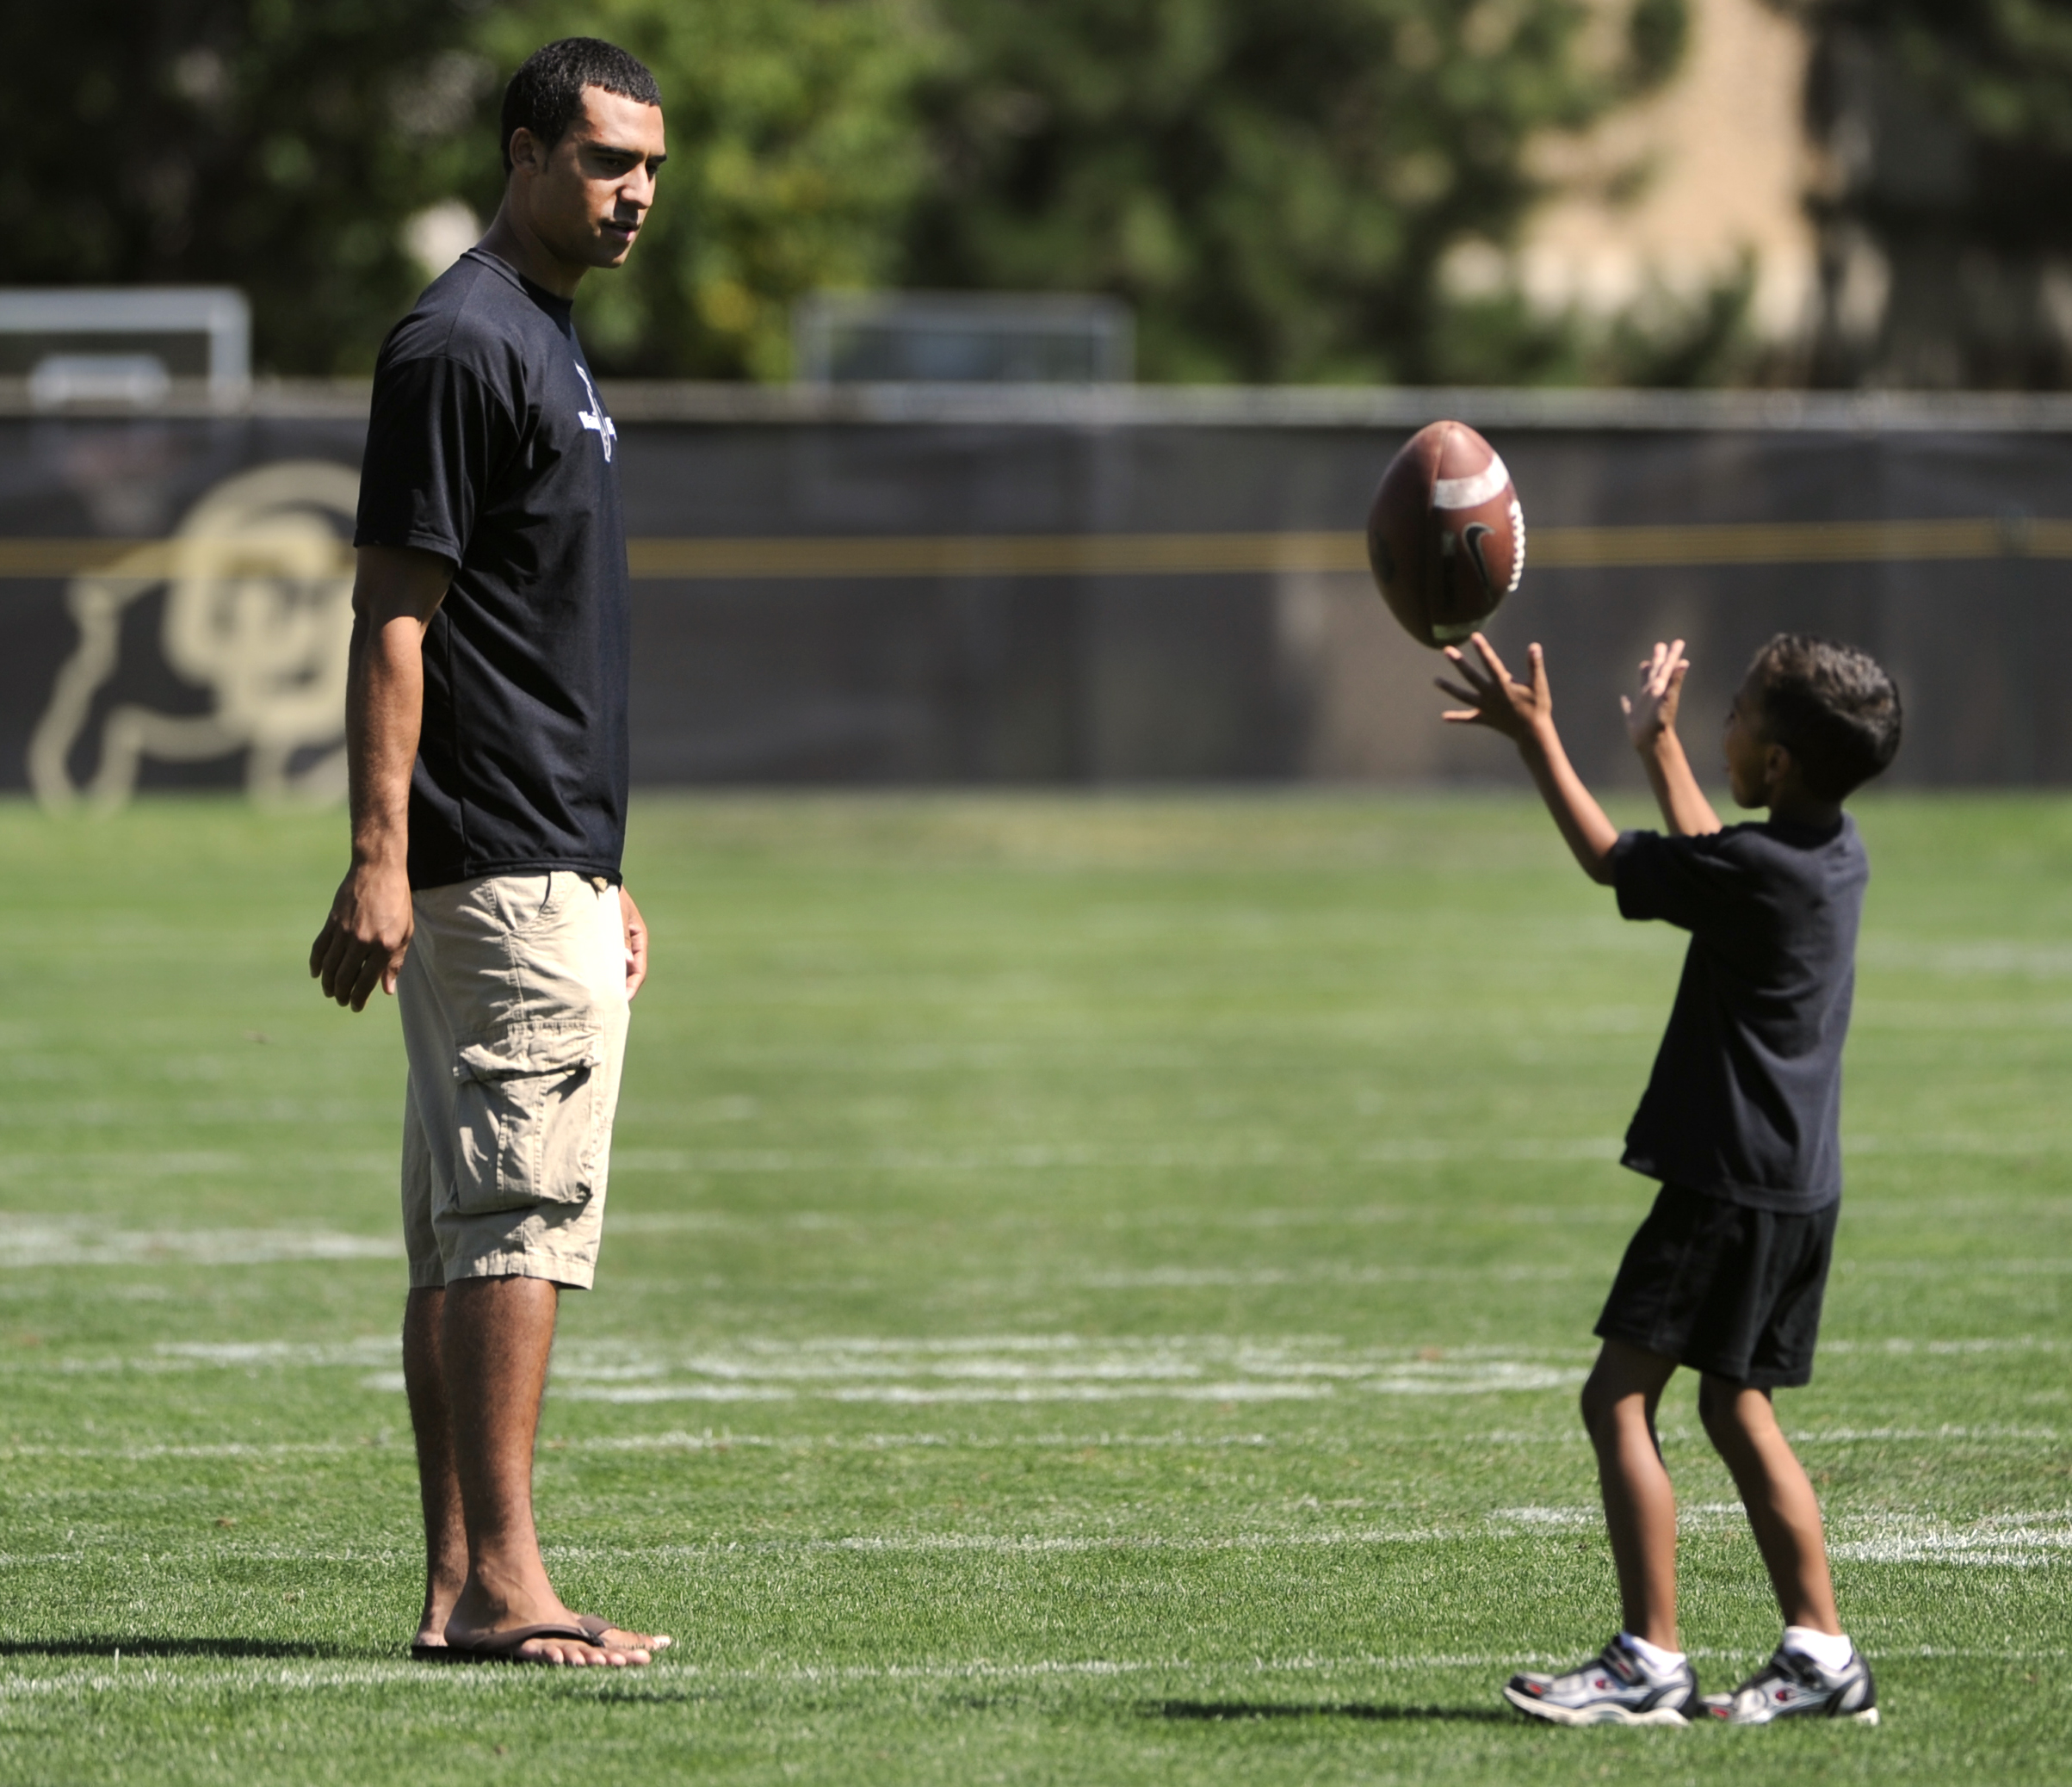 The University of Colorado Buffaloes football team has another full practice on Saturday with new and returning players and coaches getting used to the Embree system. Coach Jon Embree's son Taylor plays a little catch with cousin Sean, 5. Kathryn Scott Os